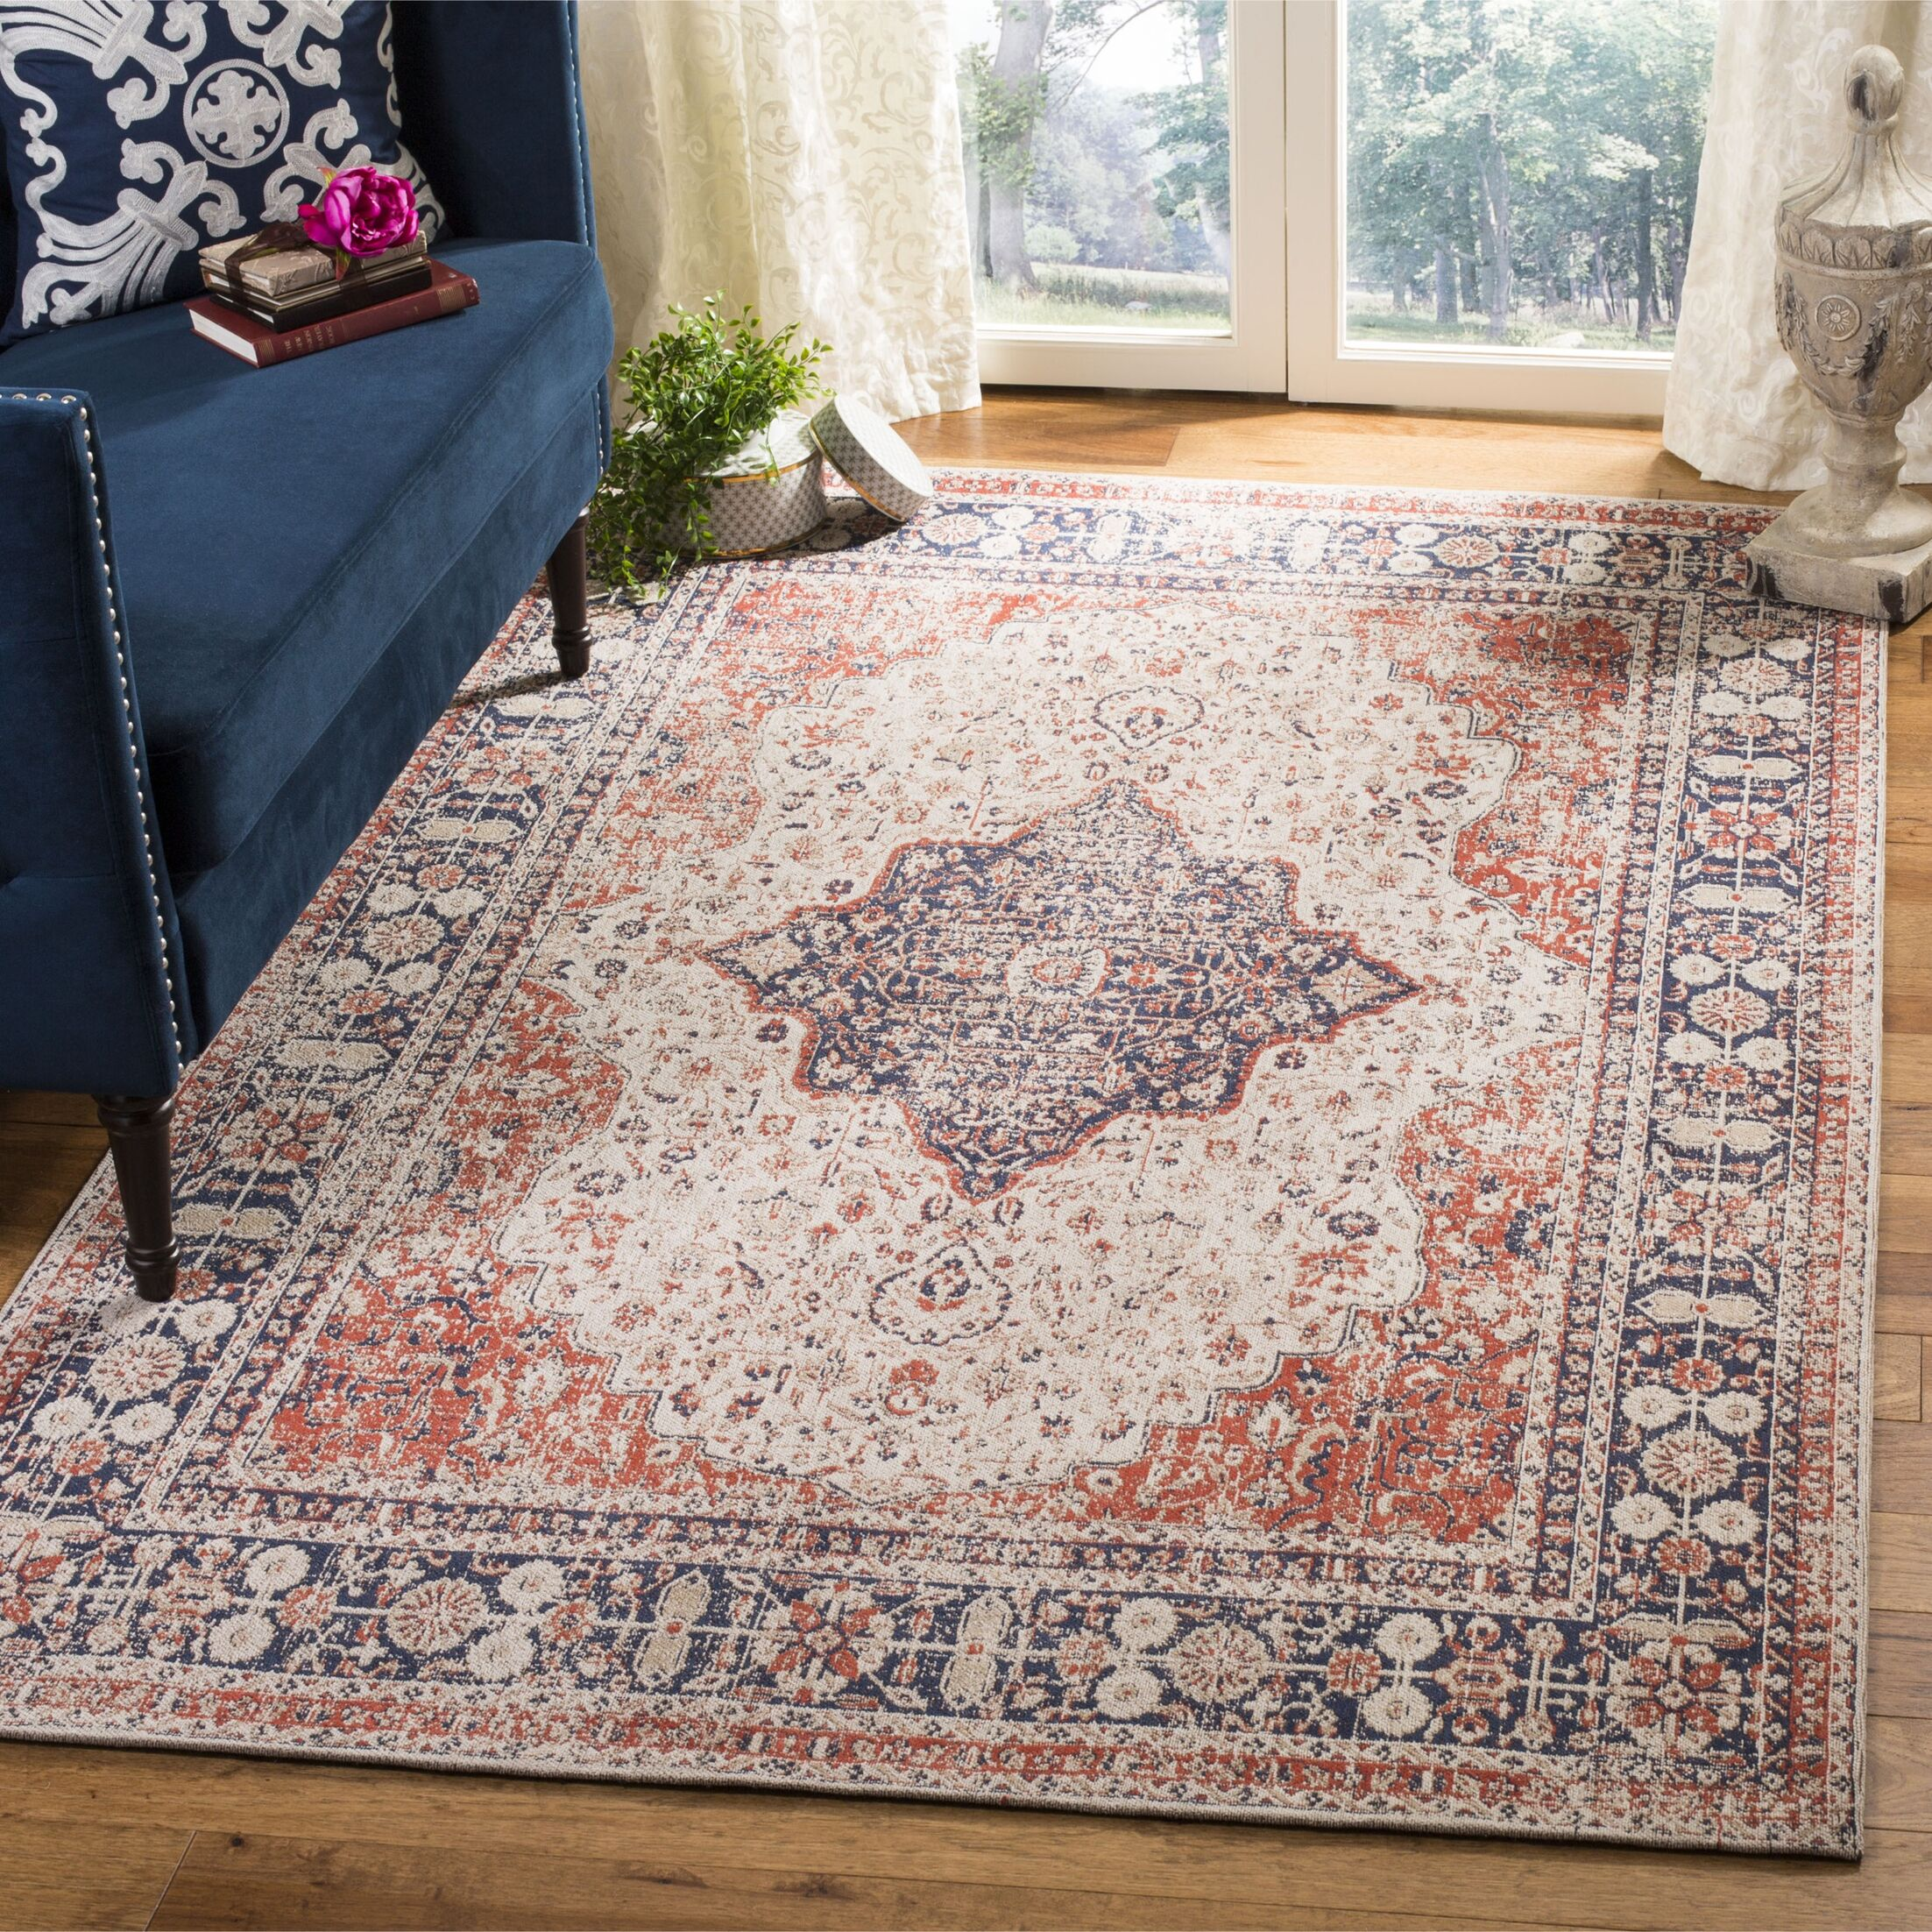 Foxborough Classic Vintage Apricot/Ivory Area Rug Rug Size: Rectangle 2'3